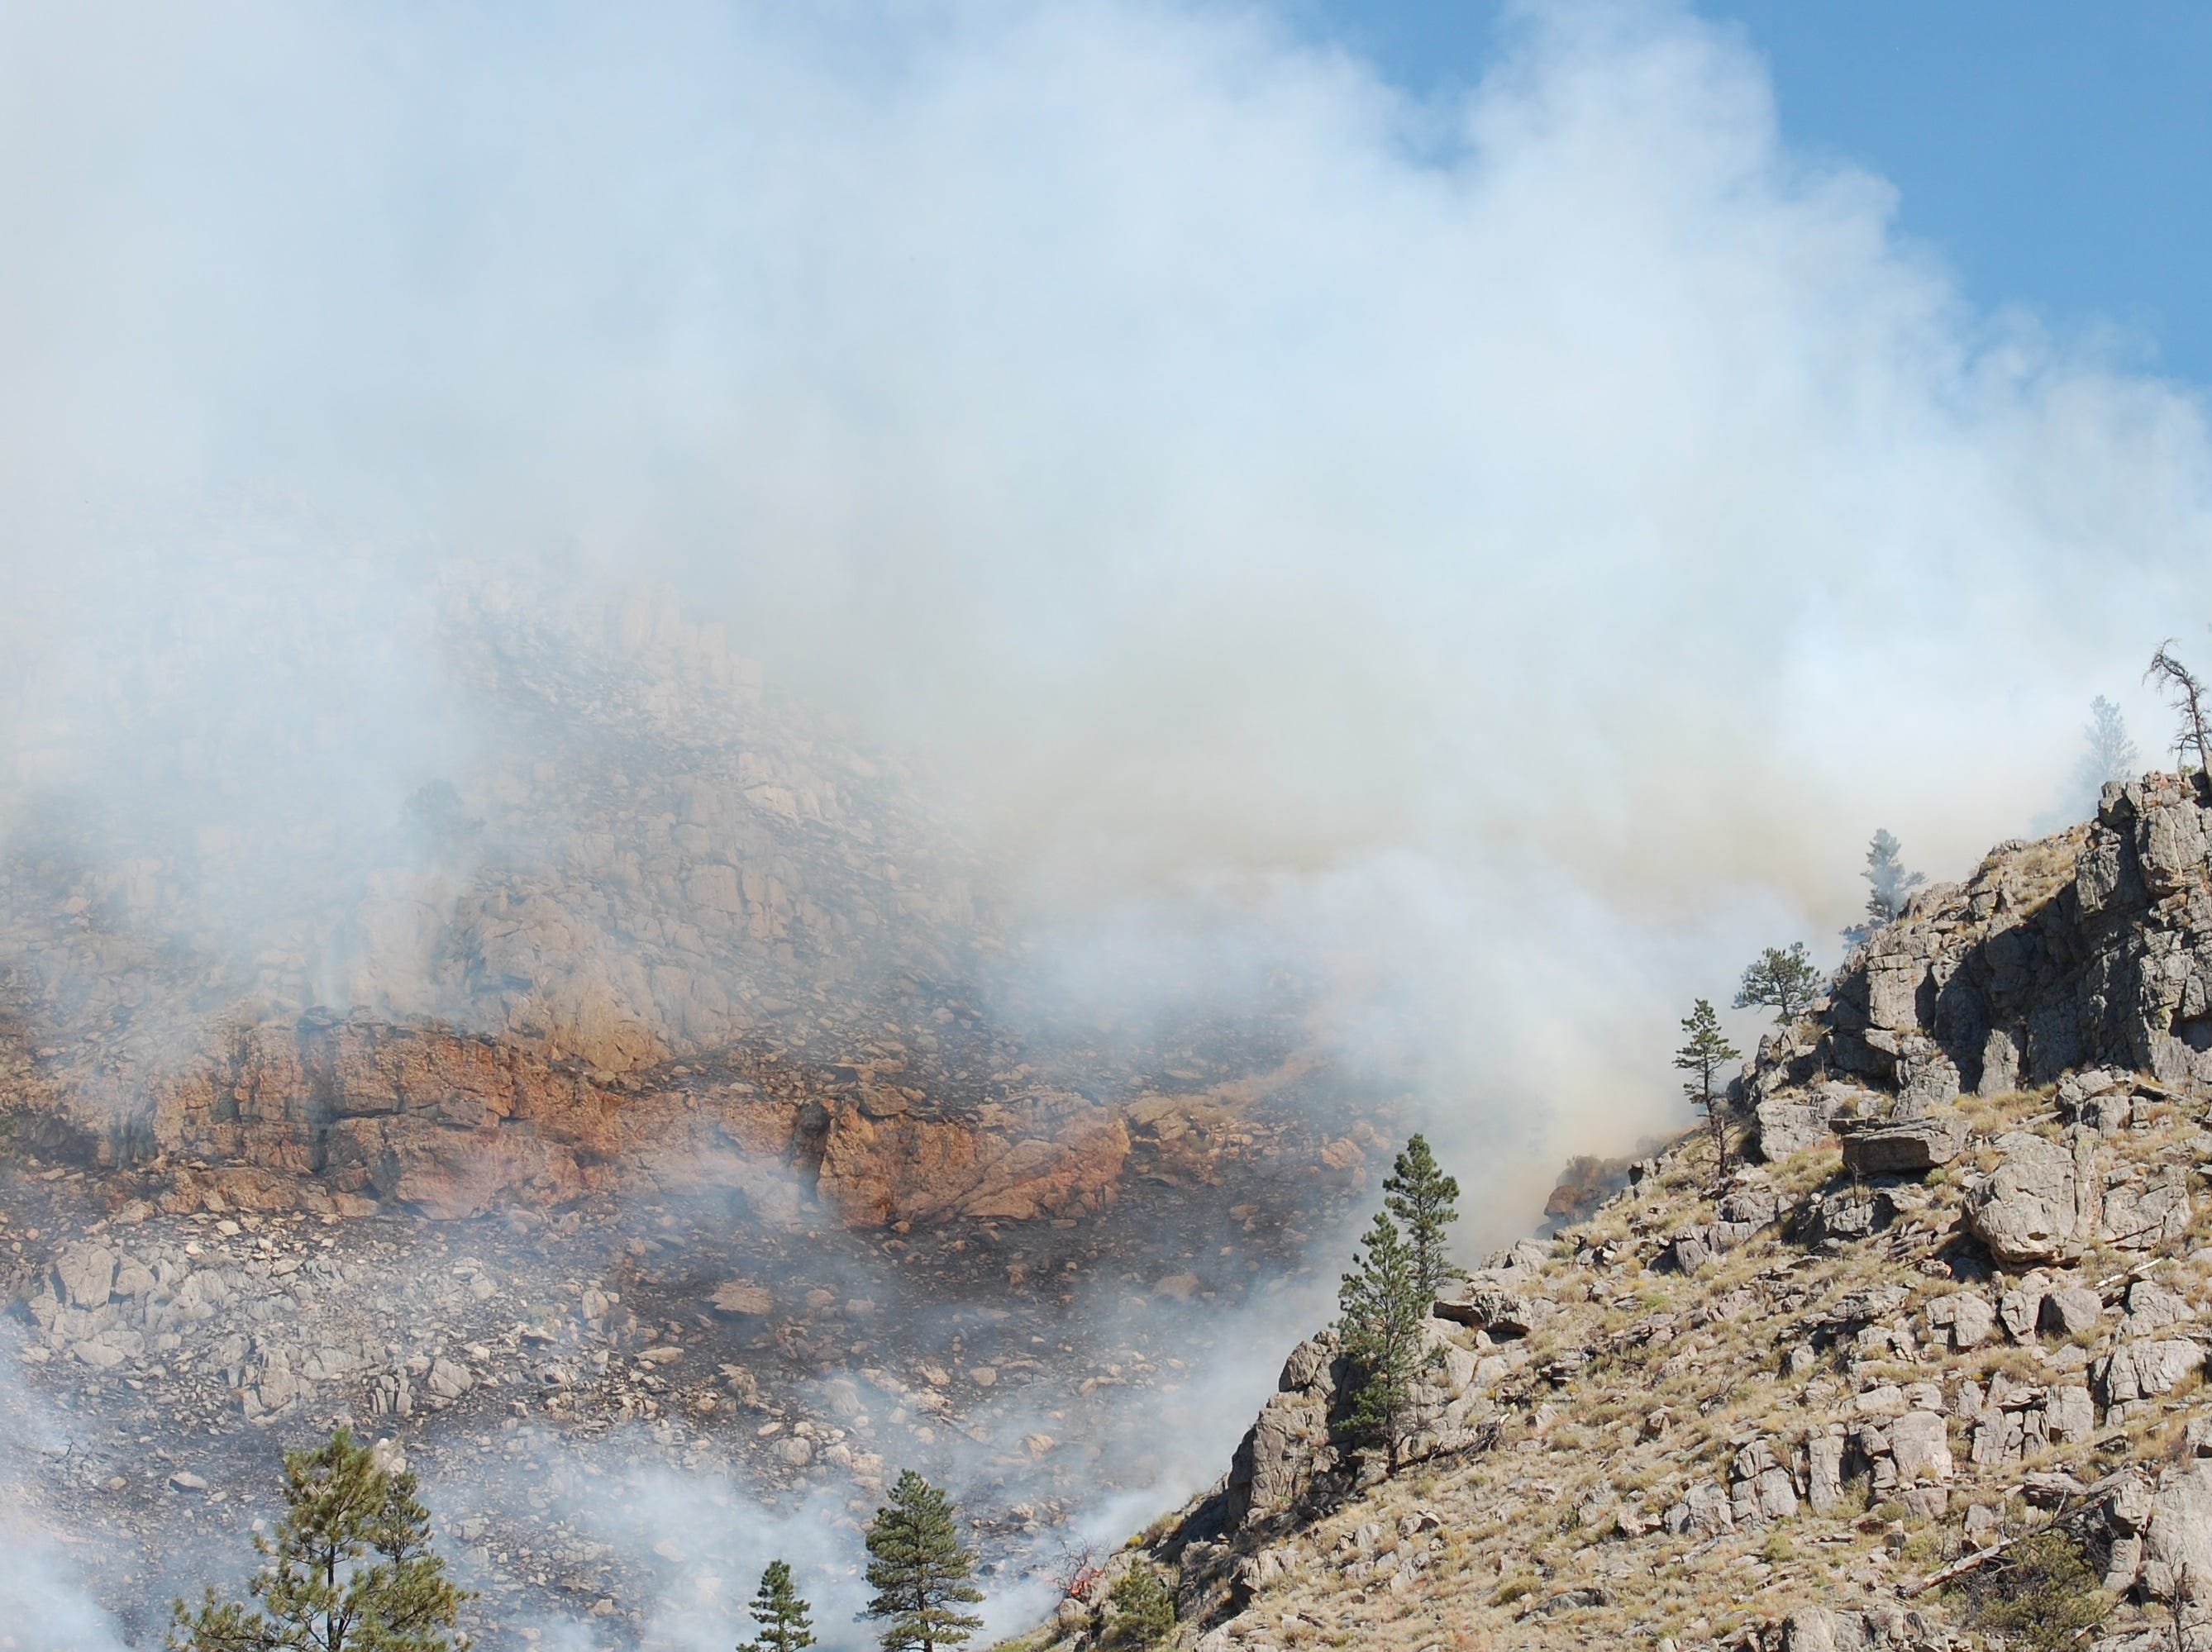 Smoke rises from the Seaman Fire as it works its way to Colorado Highway 14 just west of Gateway Park in the Poudre Canyon.